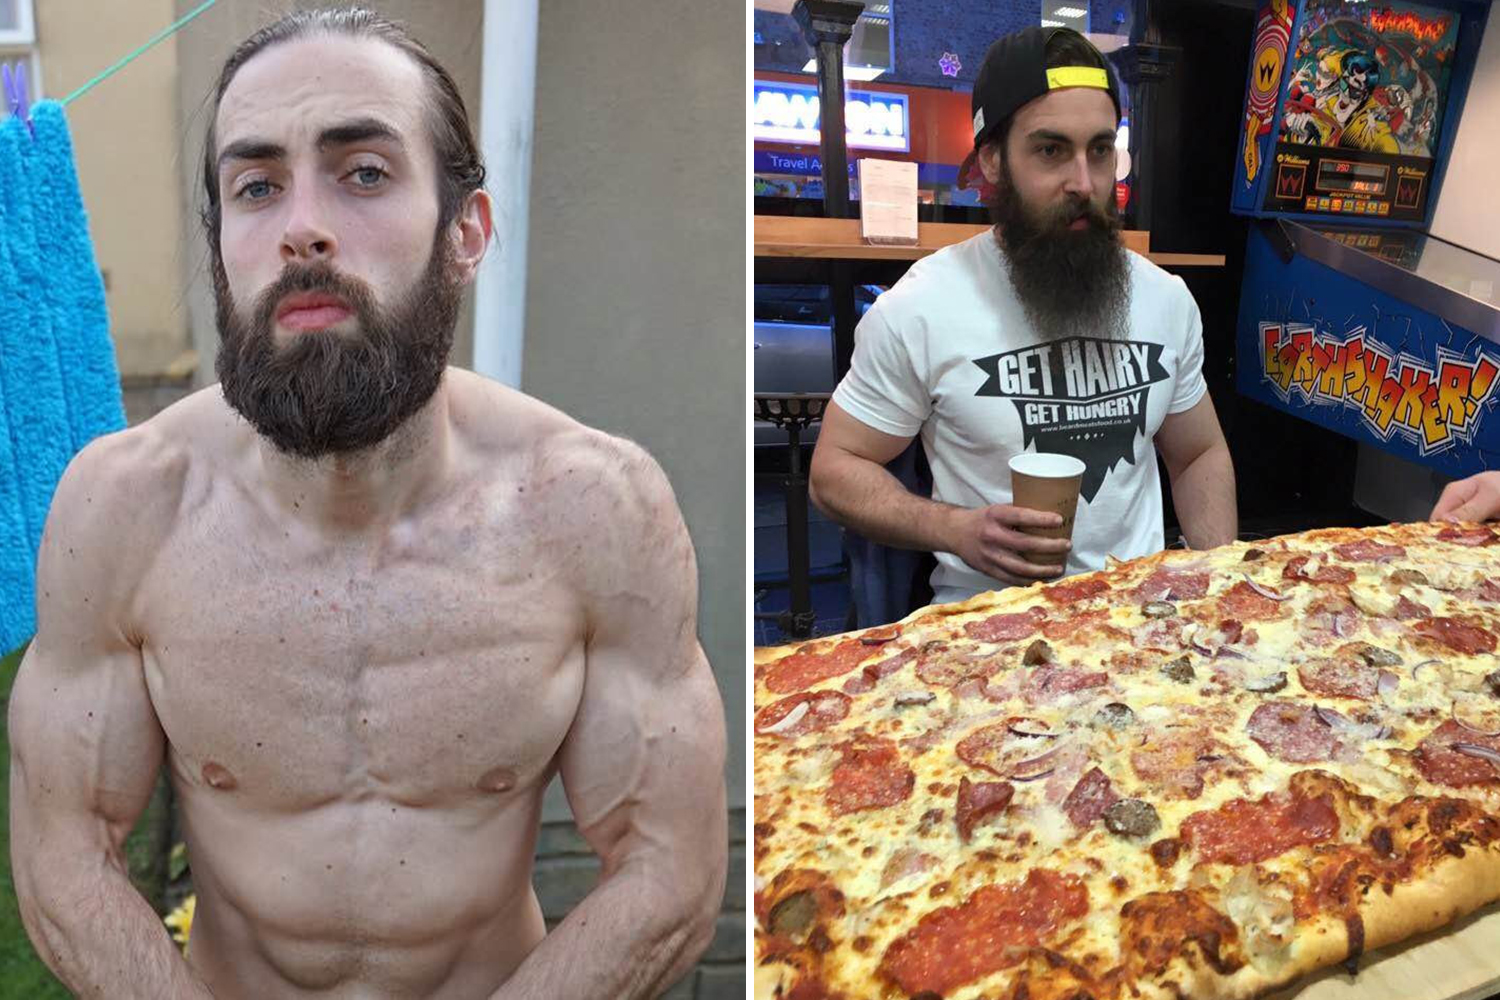 MAN GETS BODY FAT DOWN TO EIGHT PER CENT BY GORGING ON JUNK FOOD